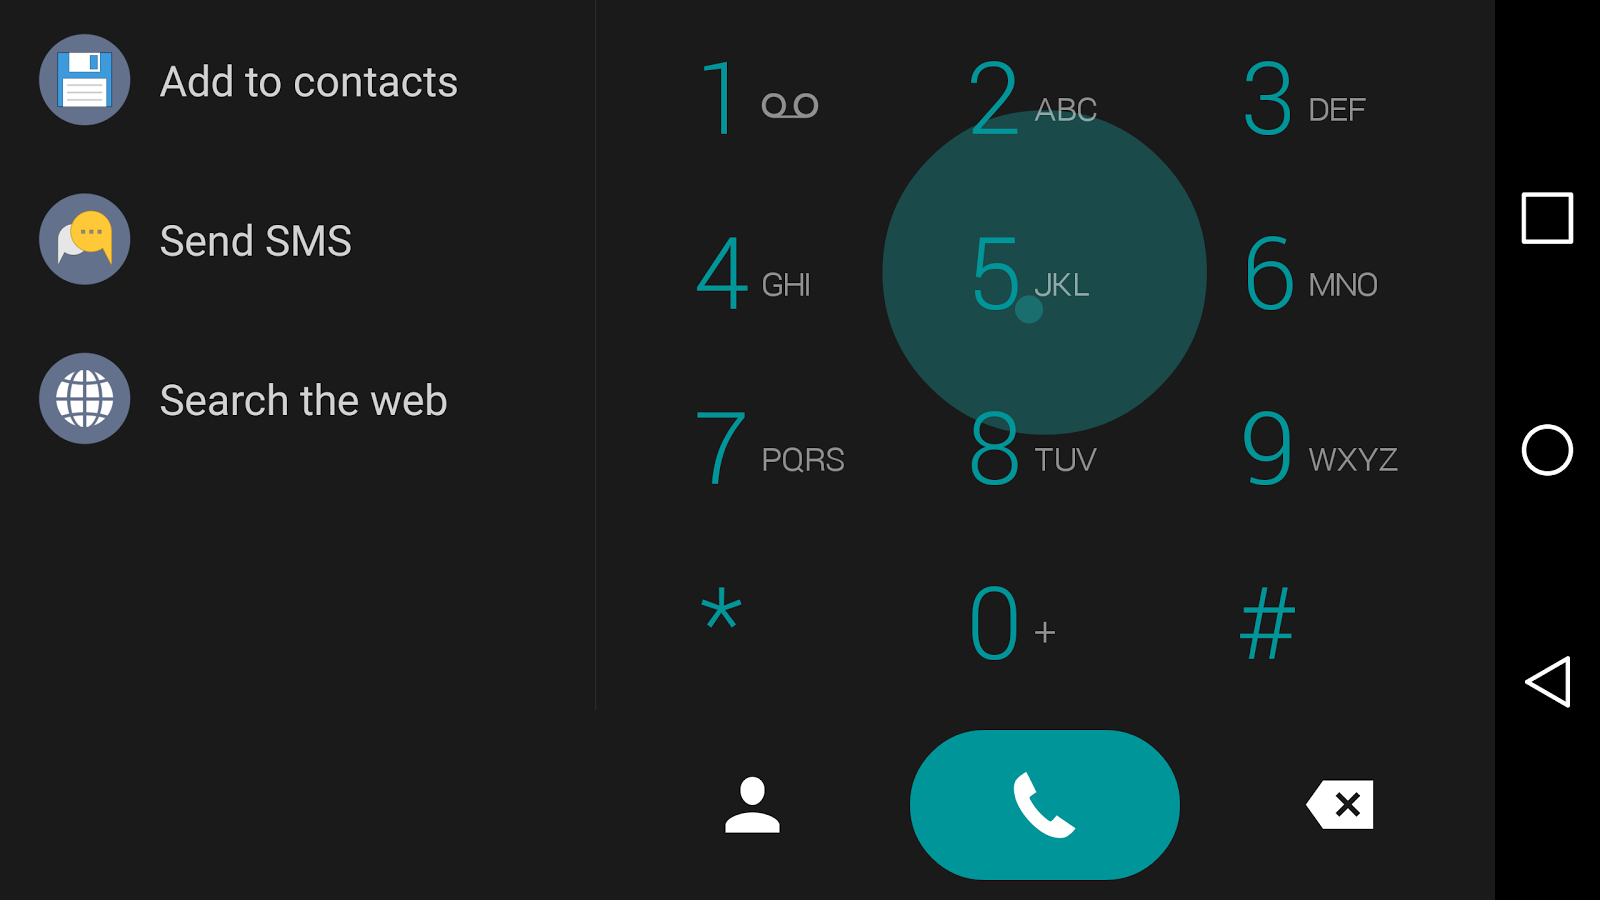 exdialer pro key apk latest version